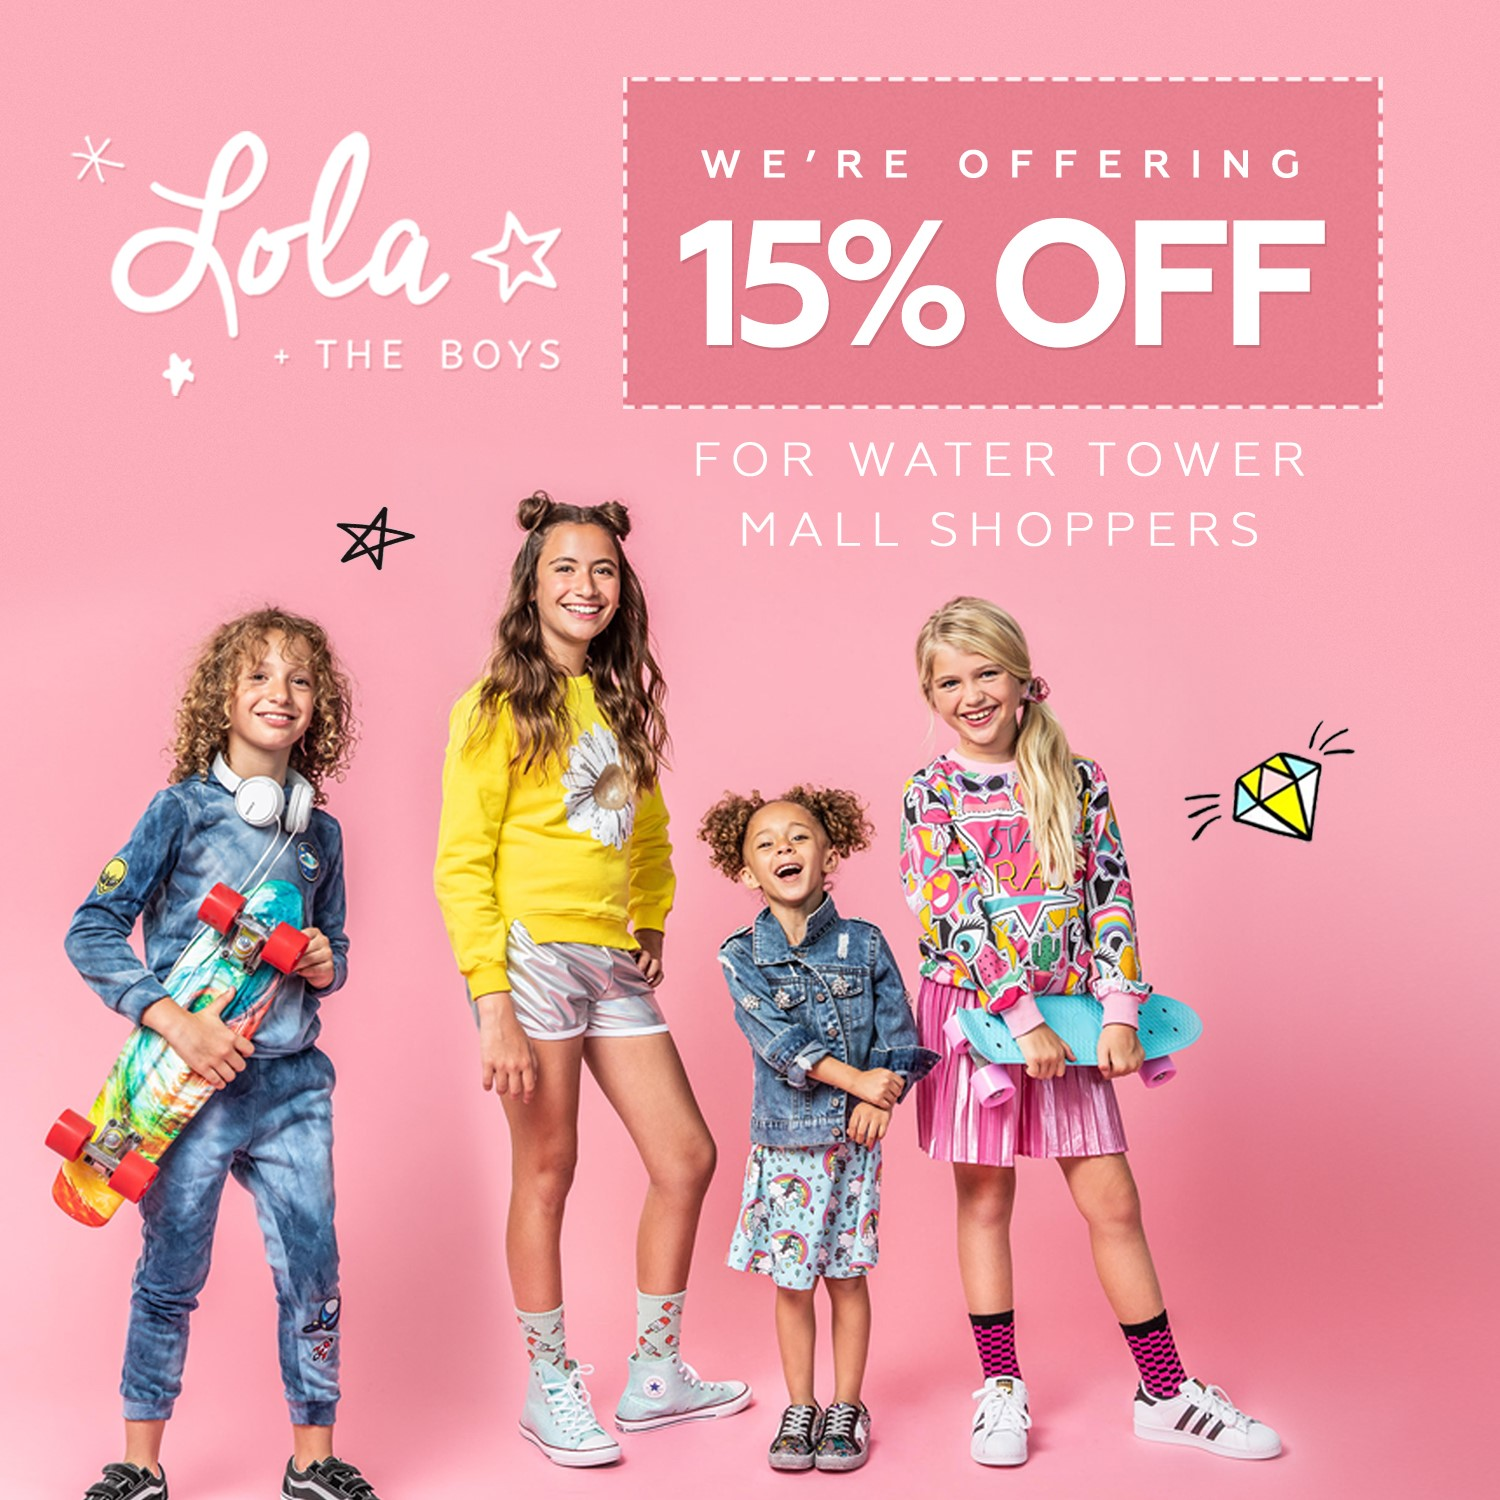 Save 15% on children's apparel at Lola + the Boys from Lola And The Boys